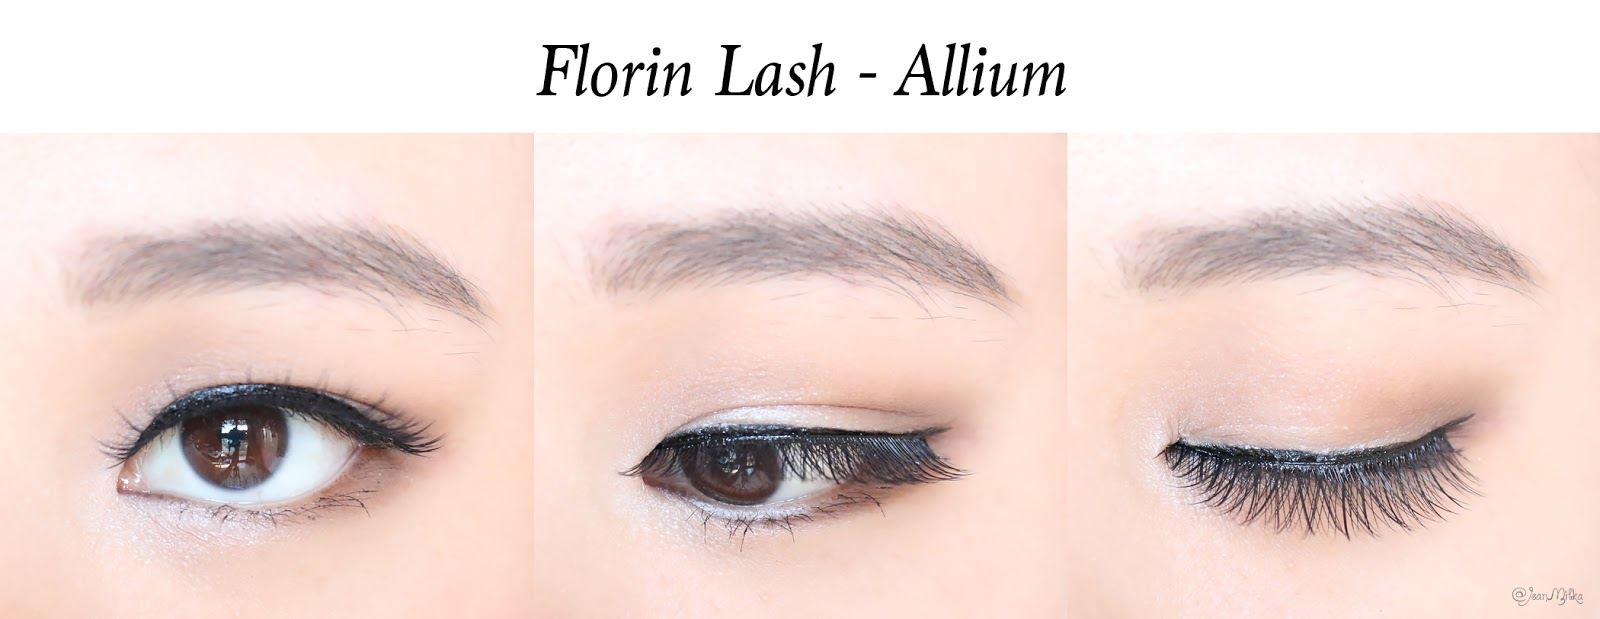 eyelashes, florin eyelashes, florin lash, florin, fake eyelashes, florin lash collection, bulu mata, bulu mata palsu, bulu mata murah, bulu mata natural, natural lashes, natural falsies, review, makeup